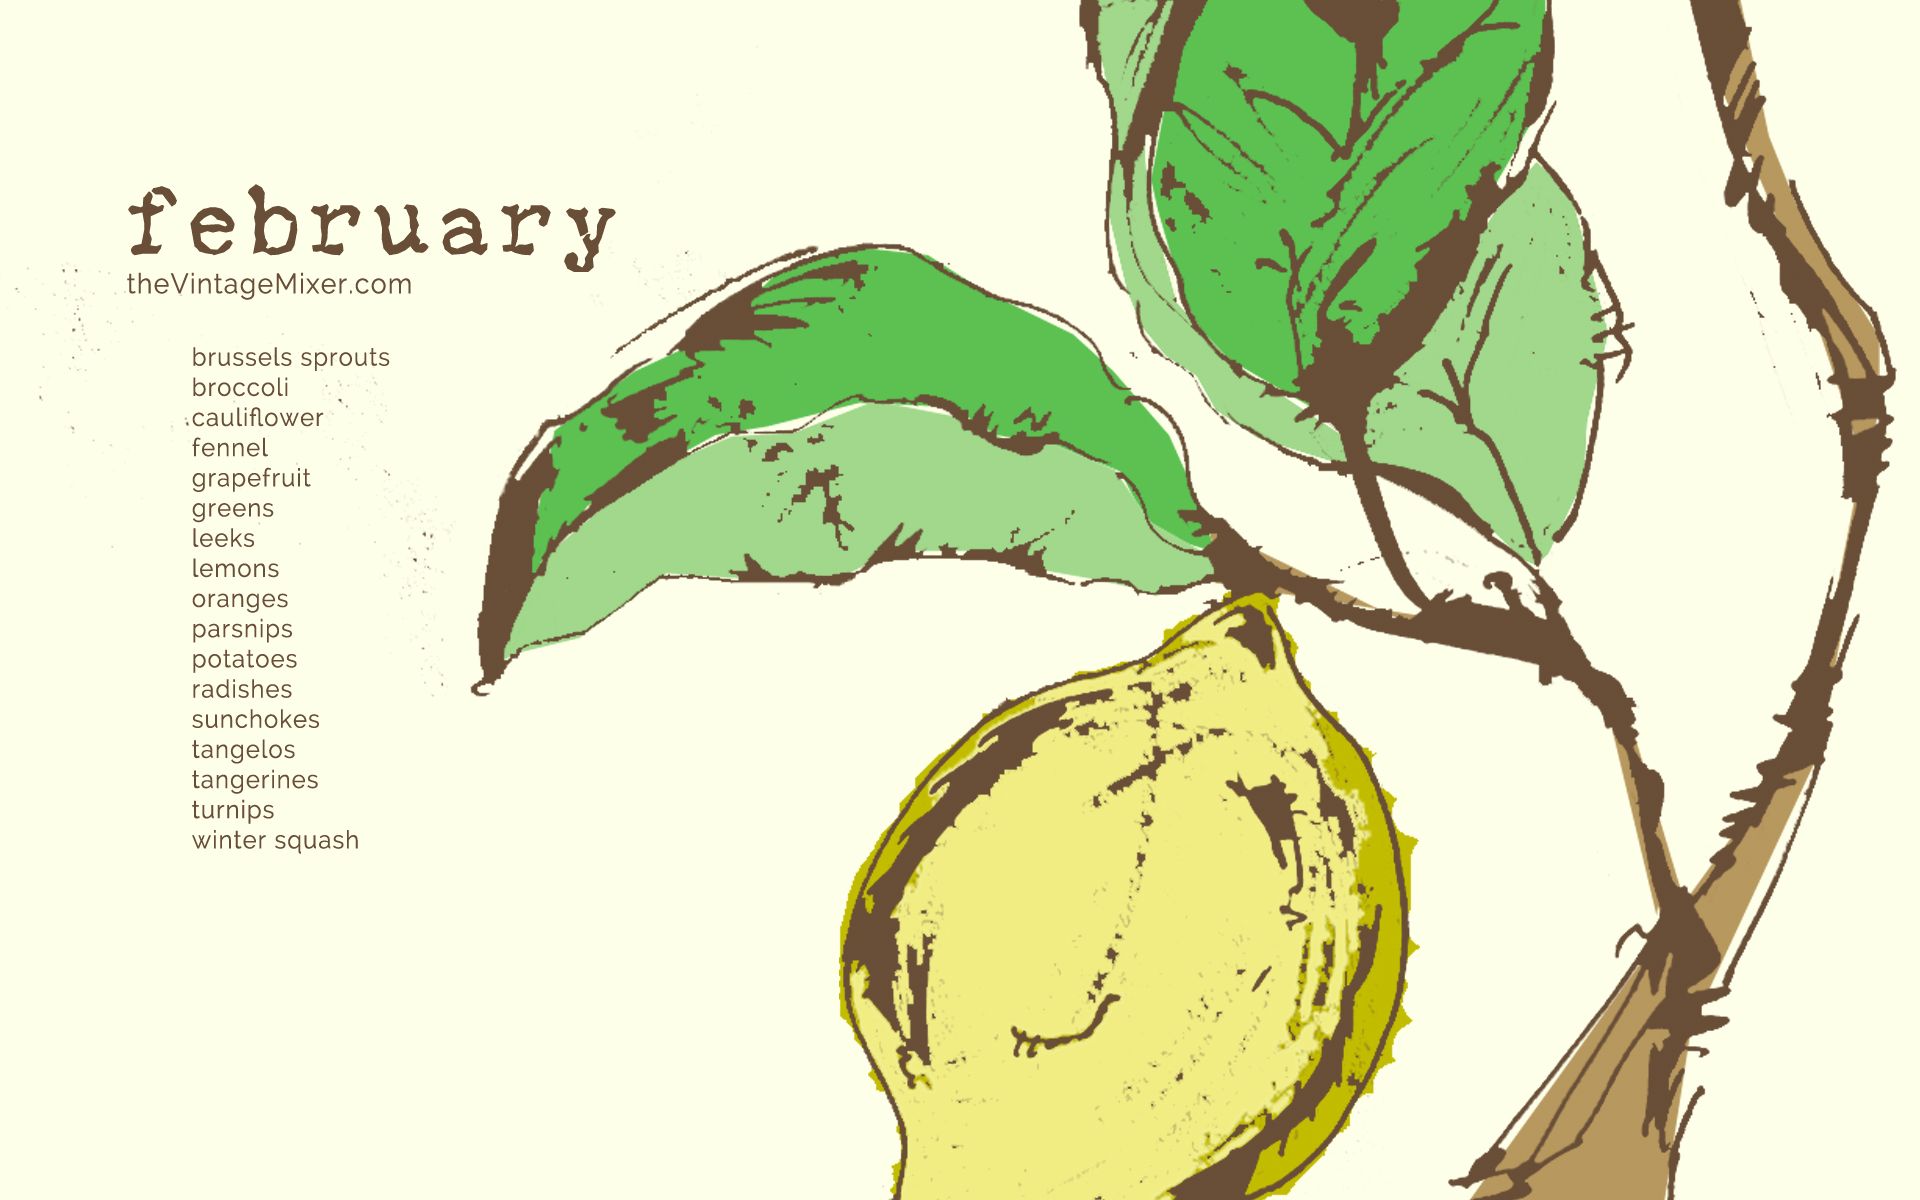 February Seasonal Produce Guide for Desktop Wallpaper